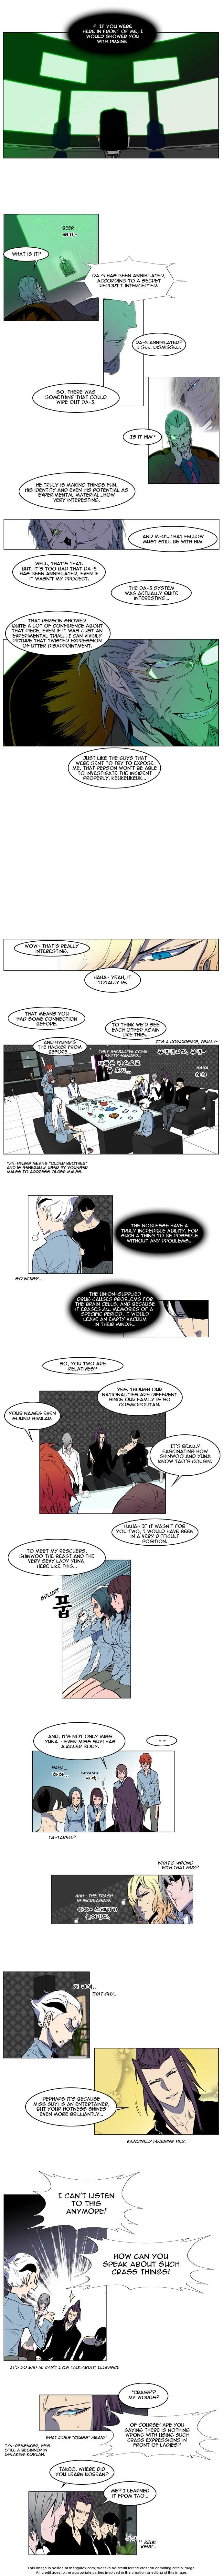 Noblesse 140 Page 2